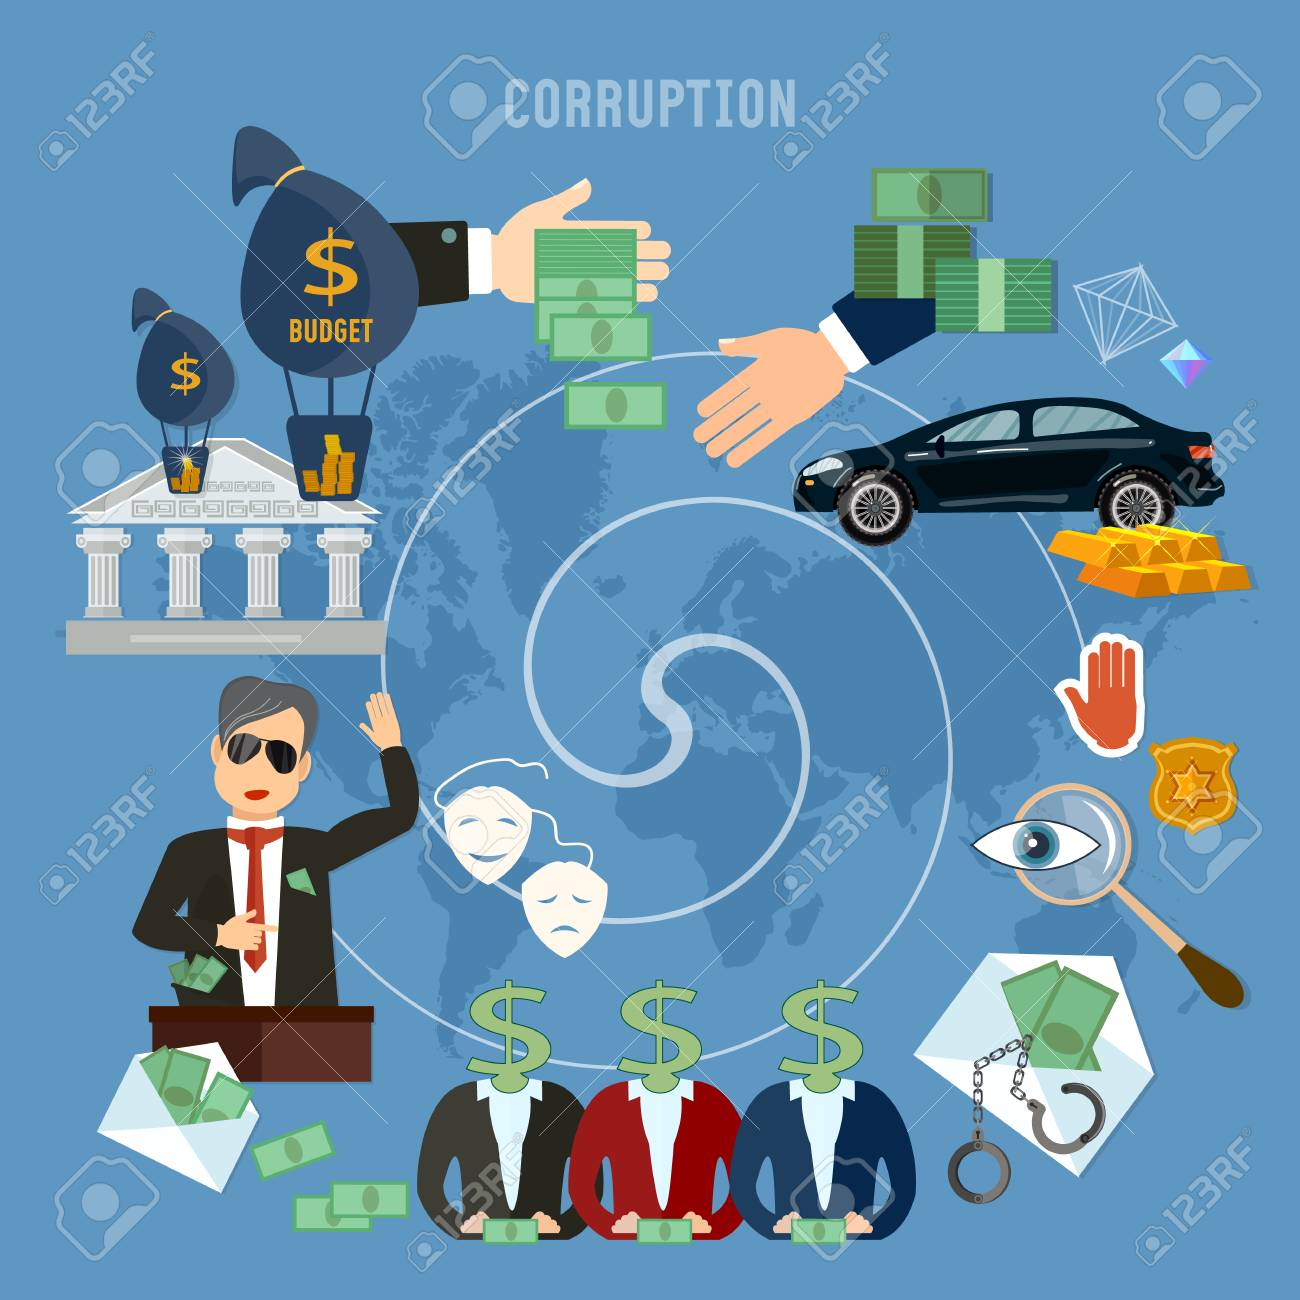 Corruption concept. Theft of public money. Deceitful politician campaign promises bribes. Anti-corruption fight stealing money from budget - 73953289